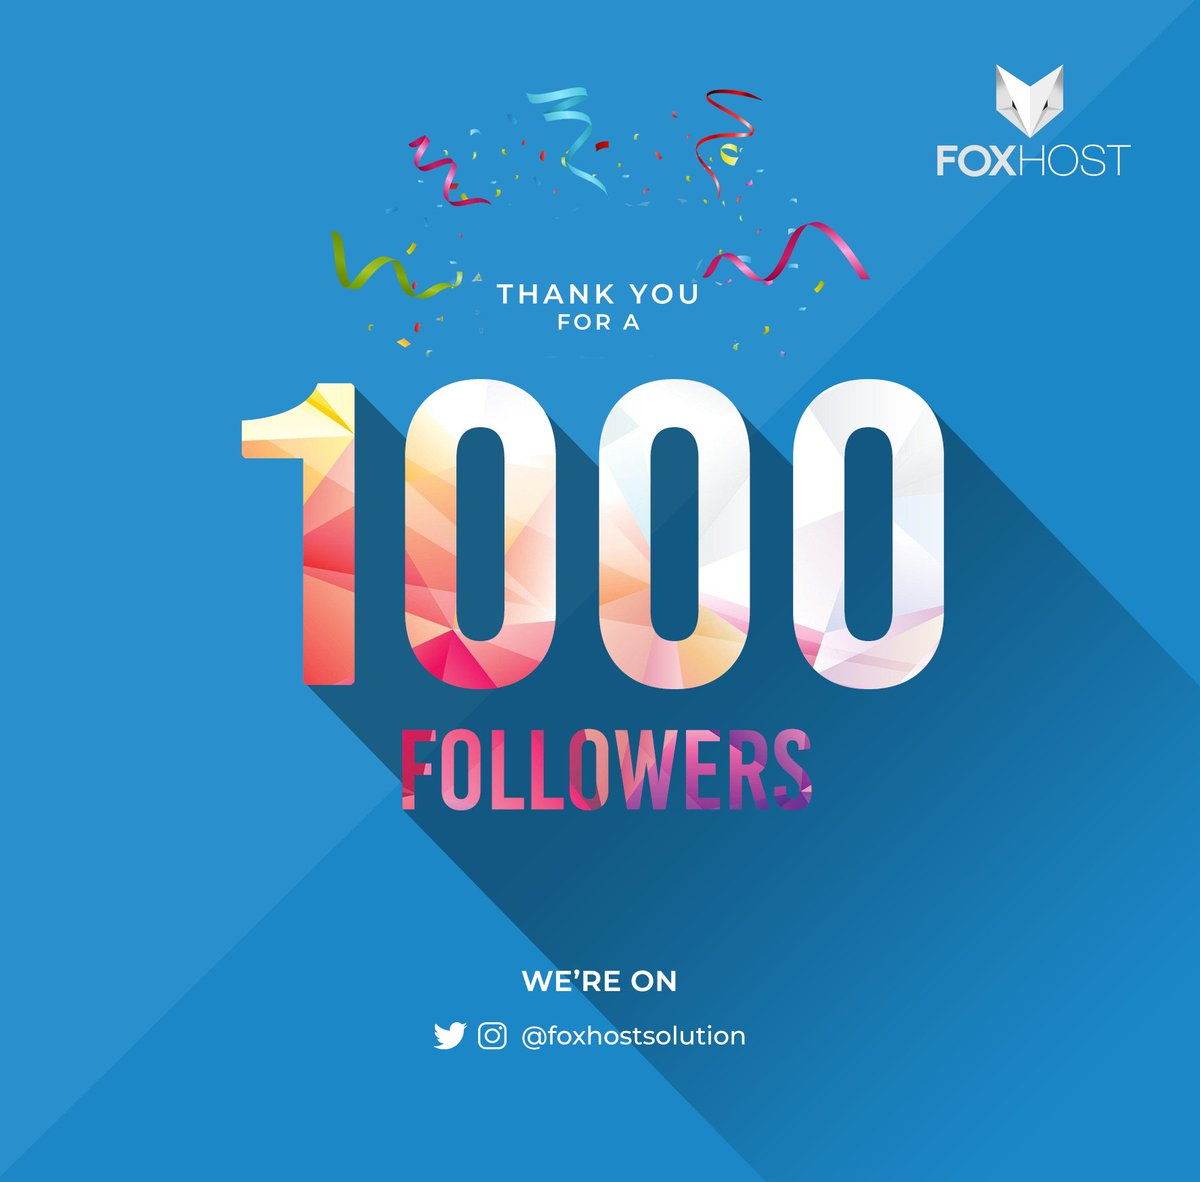 Our Instagram @foxhostsolution has reached a 1000 Followers, thank you all for supporting and being with us on this Journey, we owe it to you!Continue having us for all Web Hosting, Web & App Development needs.#FoxHost #WebSolutions #1000Followers